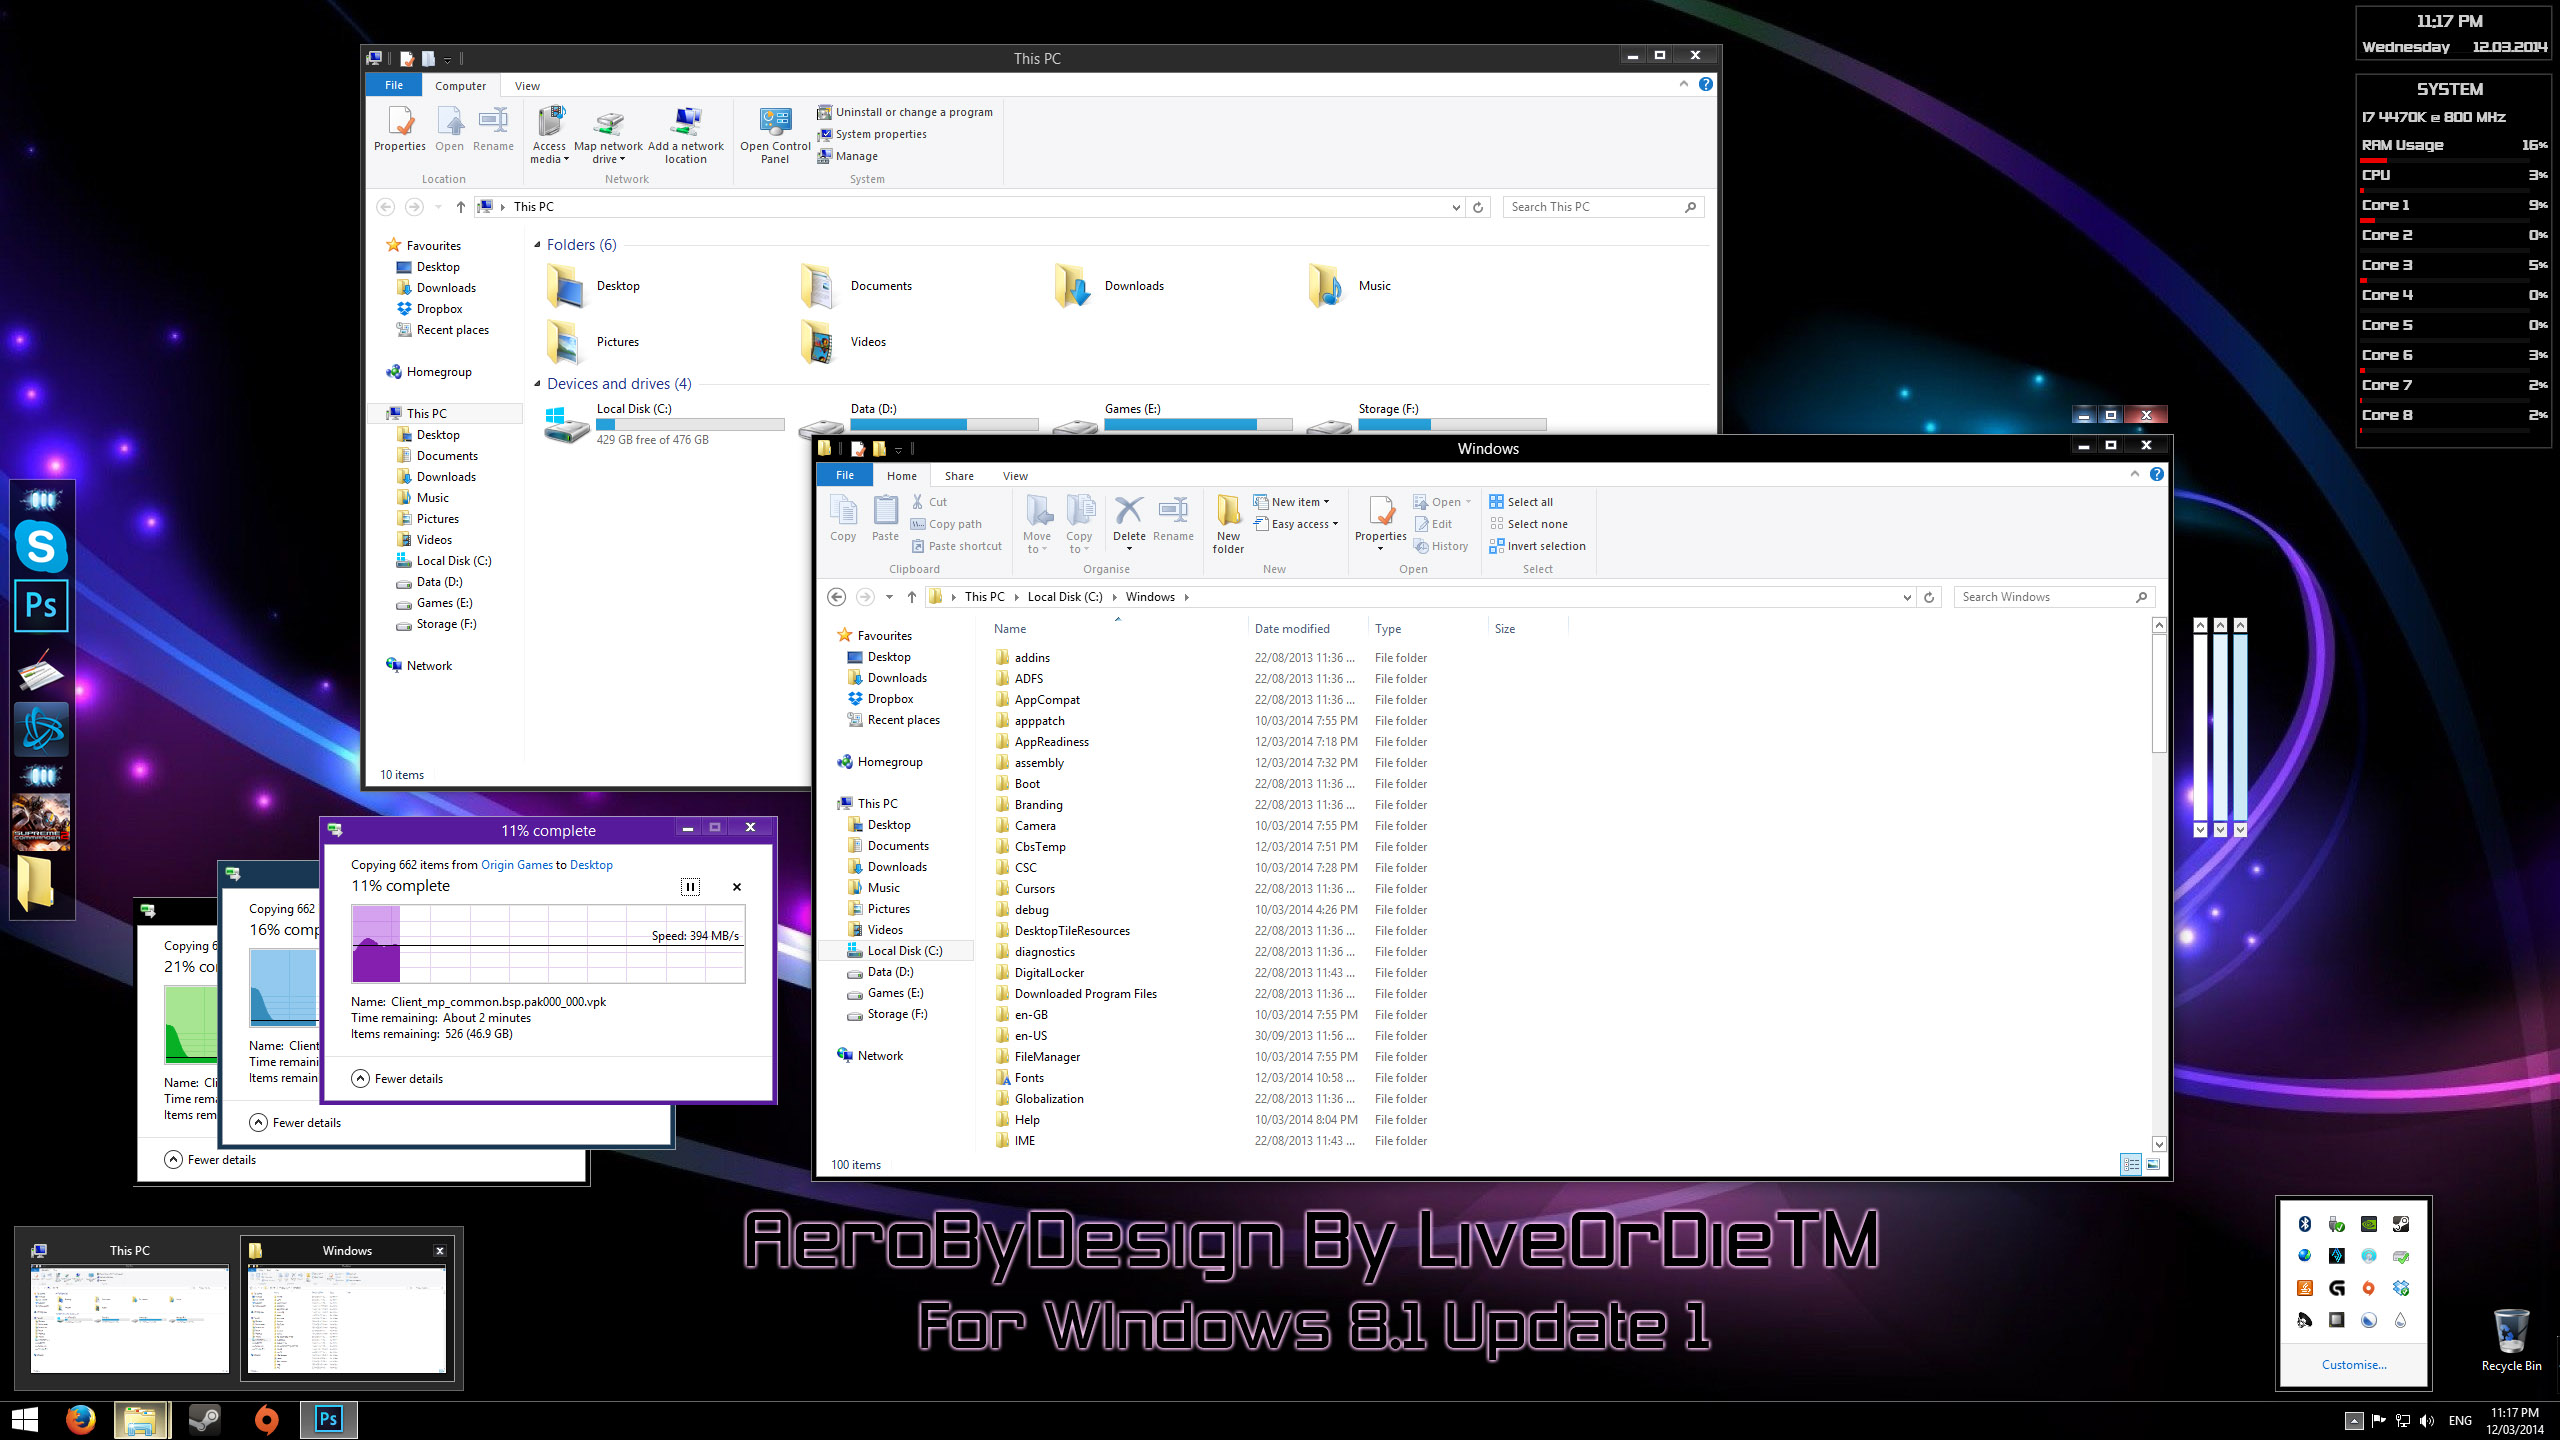 AeroByDesign For Windows 8.1 Update 1 by LiveOrDieTM